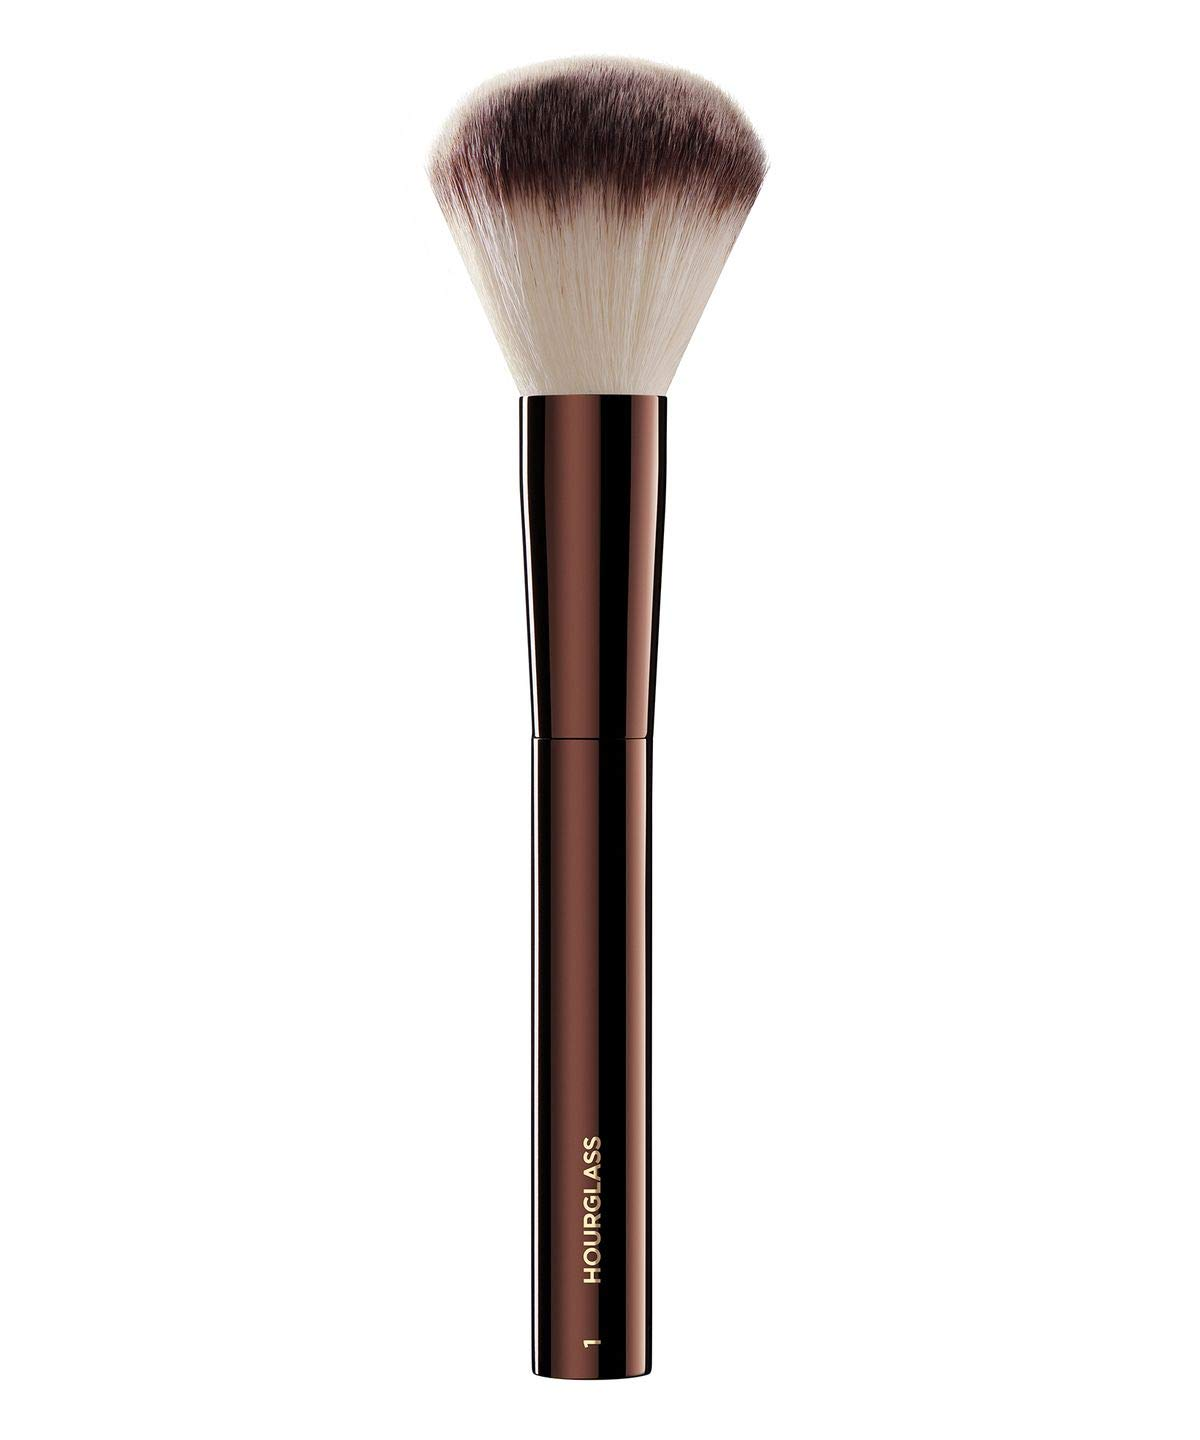 B0002EBKOY Hourglass Nº 1 Powder Brush 51t23K7vweL